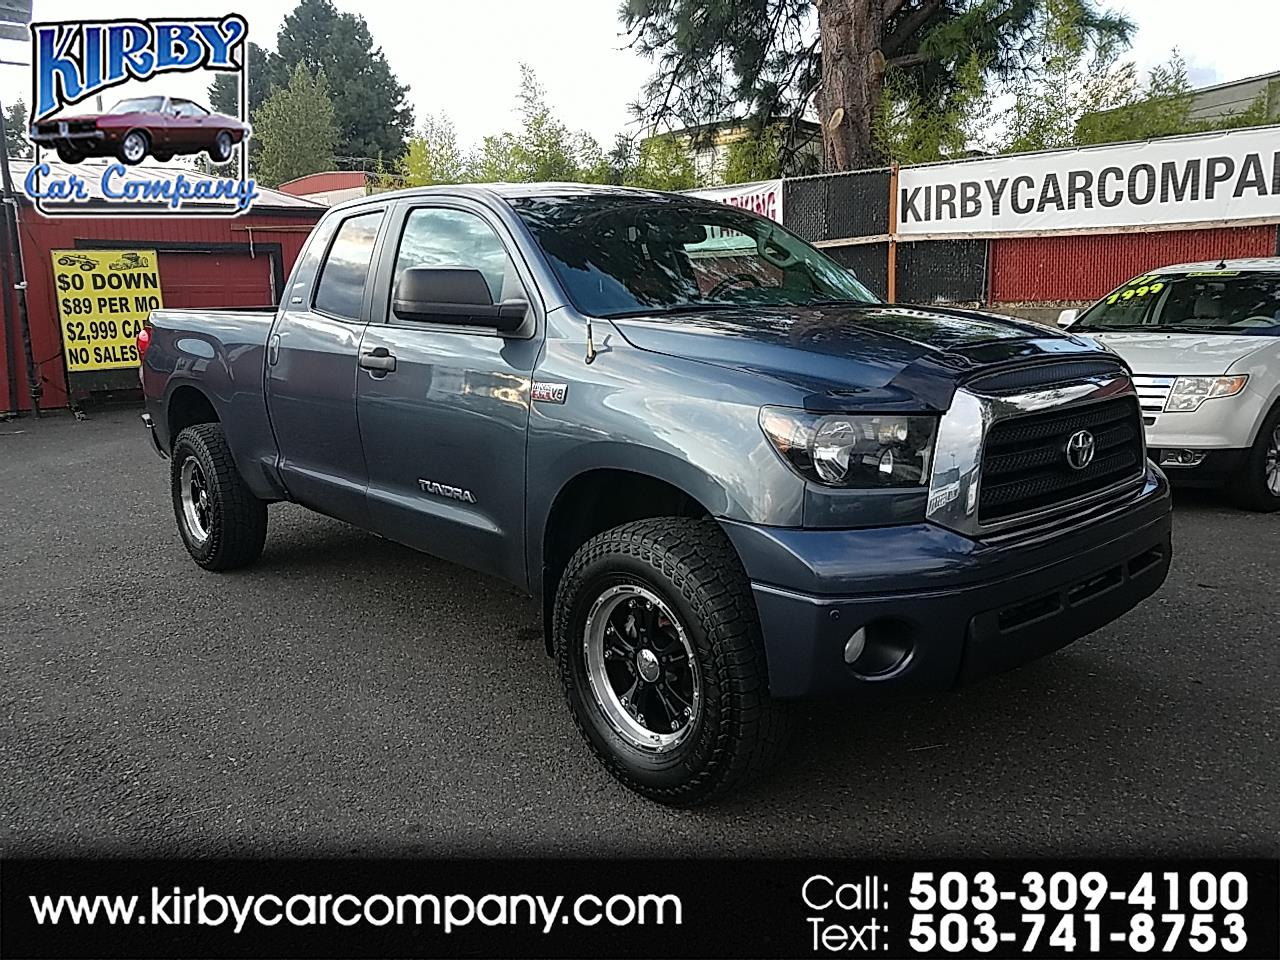 2007 Toyota Tundra SR5 Double Cab 6-sp Auto 4WD TRD Off-Road Hot WHEE